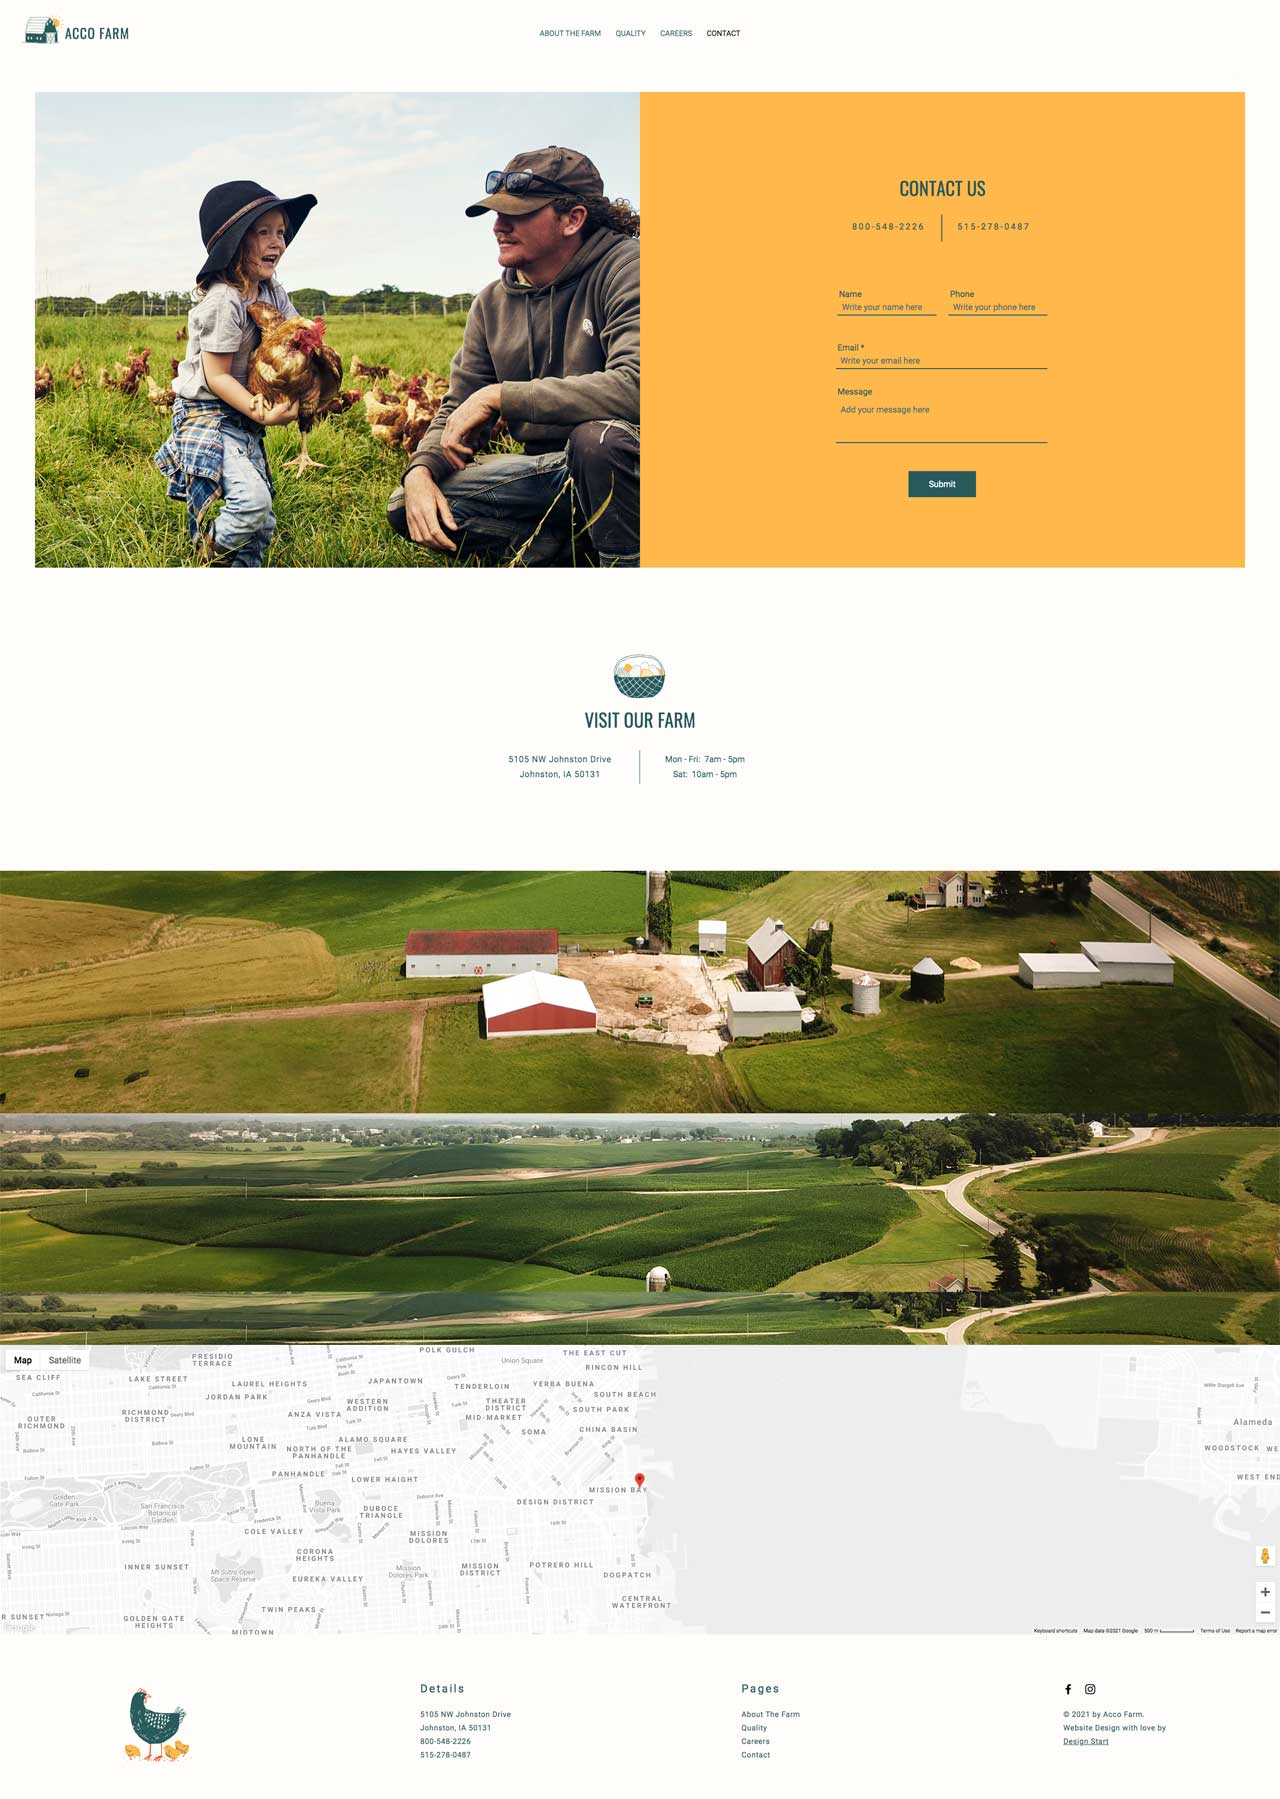 Contact Us Page Design for Acco Farm